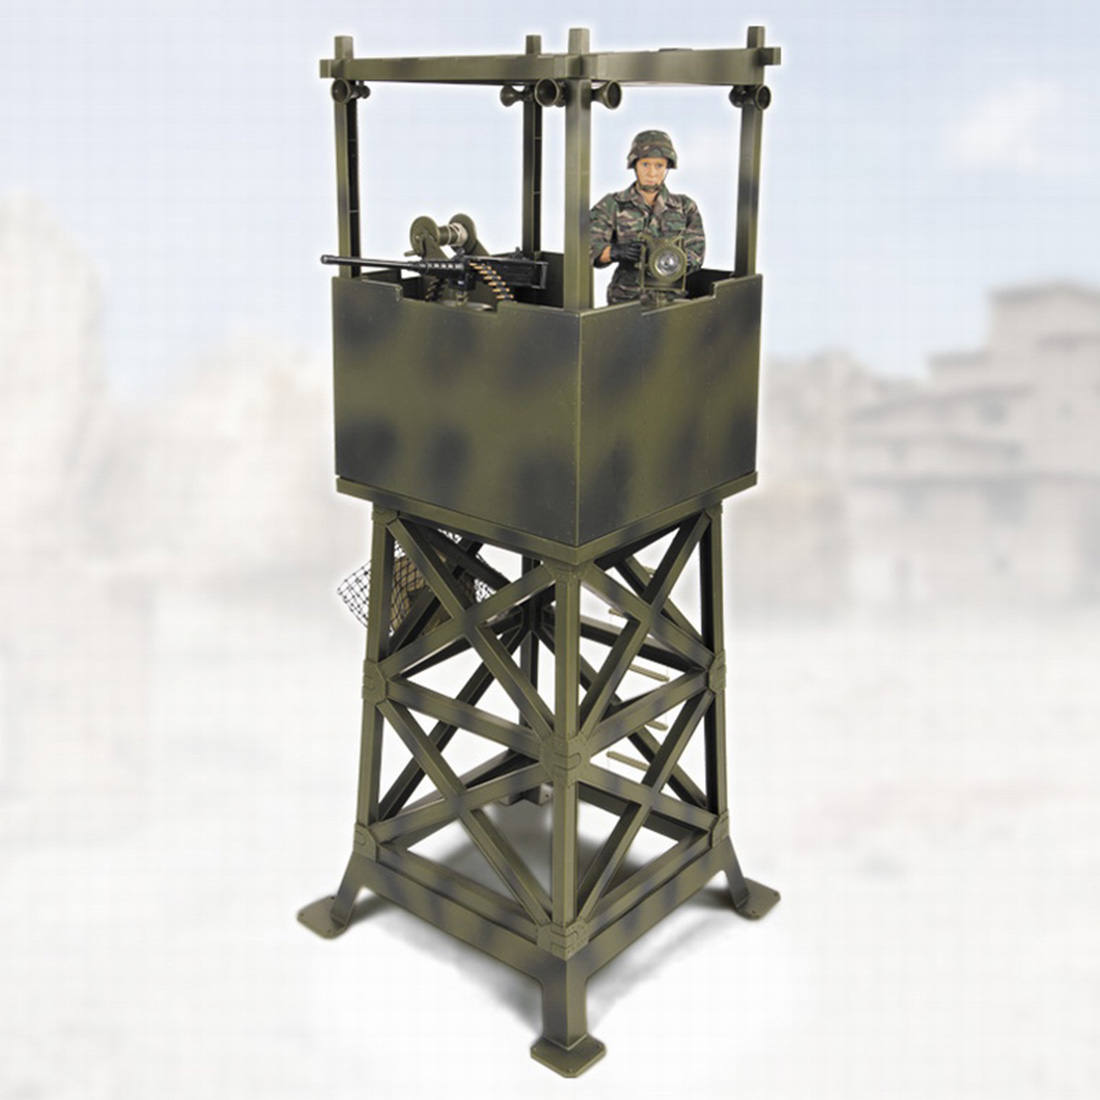 military-lookout-tower-watch-tower-soldier-accessories-for-16-action-figure-model-educational-toy-gift-for-kid-children-adult